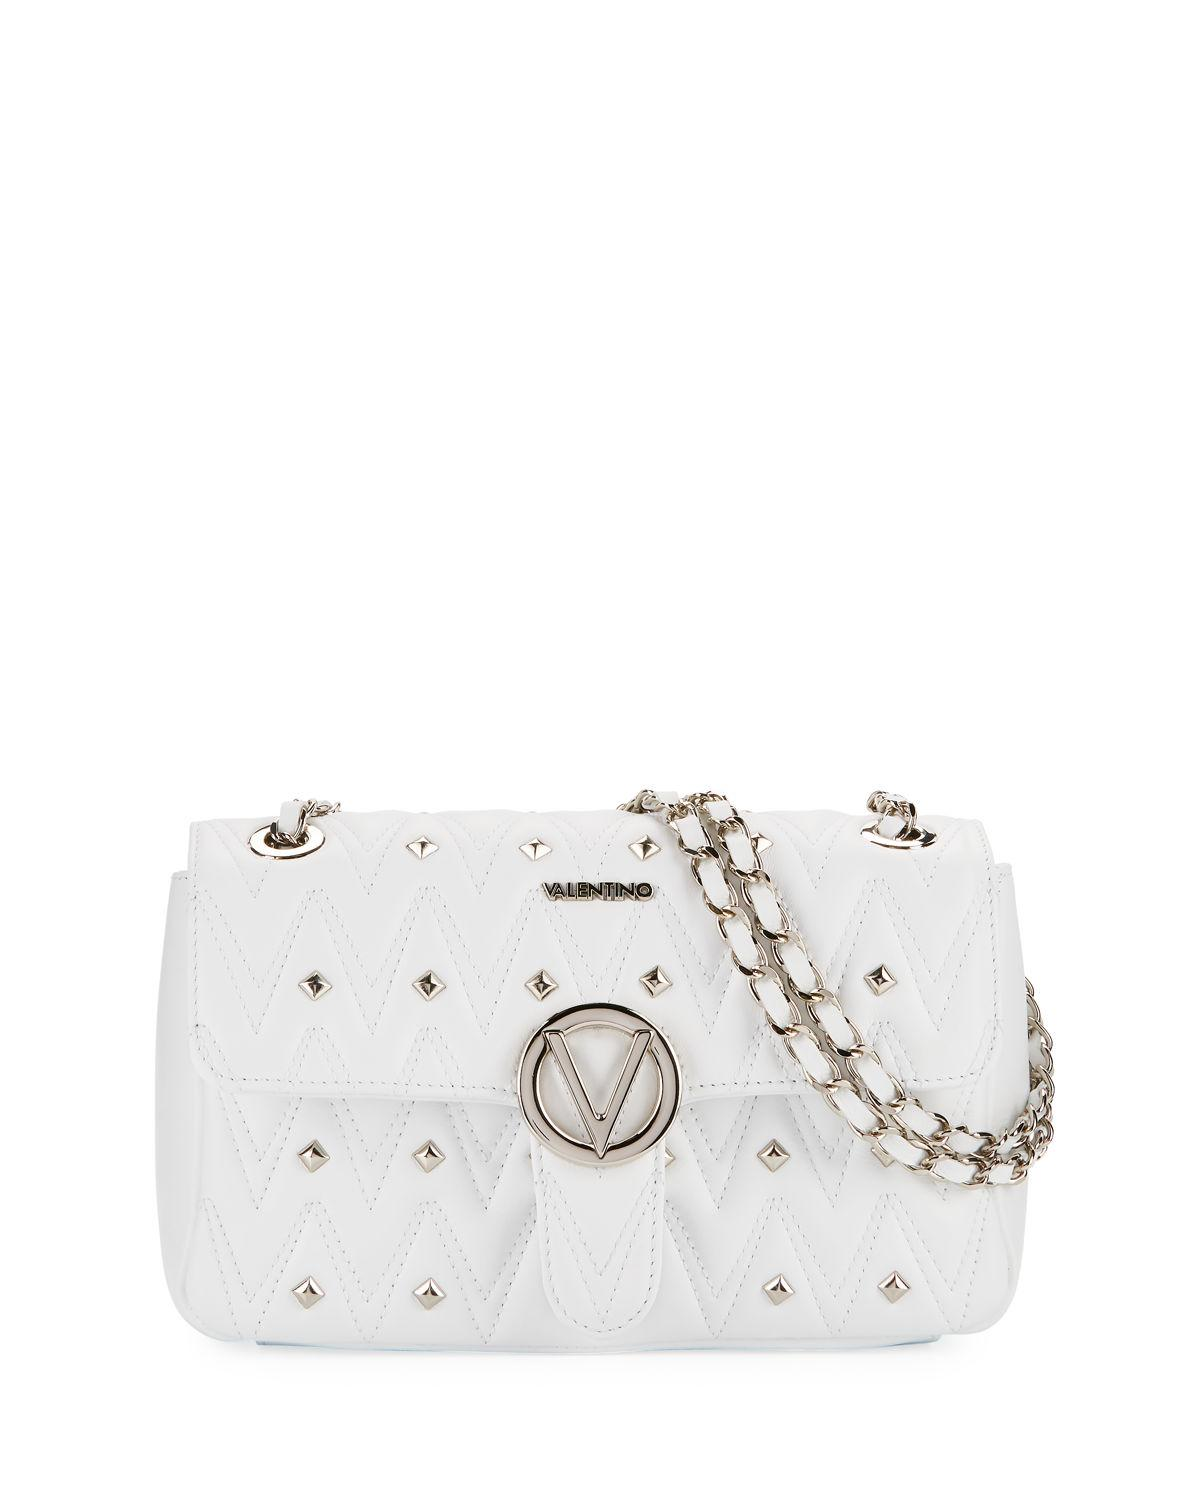 39a6c6ec3d63 Valentino By Mario Valentino Antoinette Sauvage Leather Stud Shoulder Bag  In White